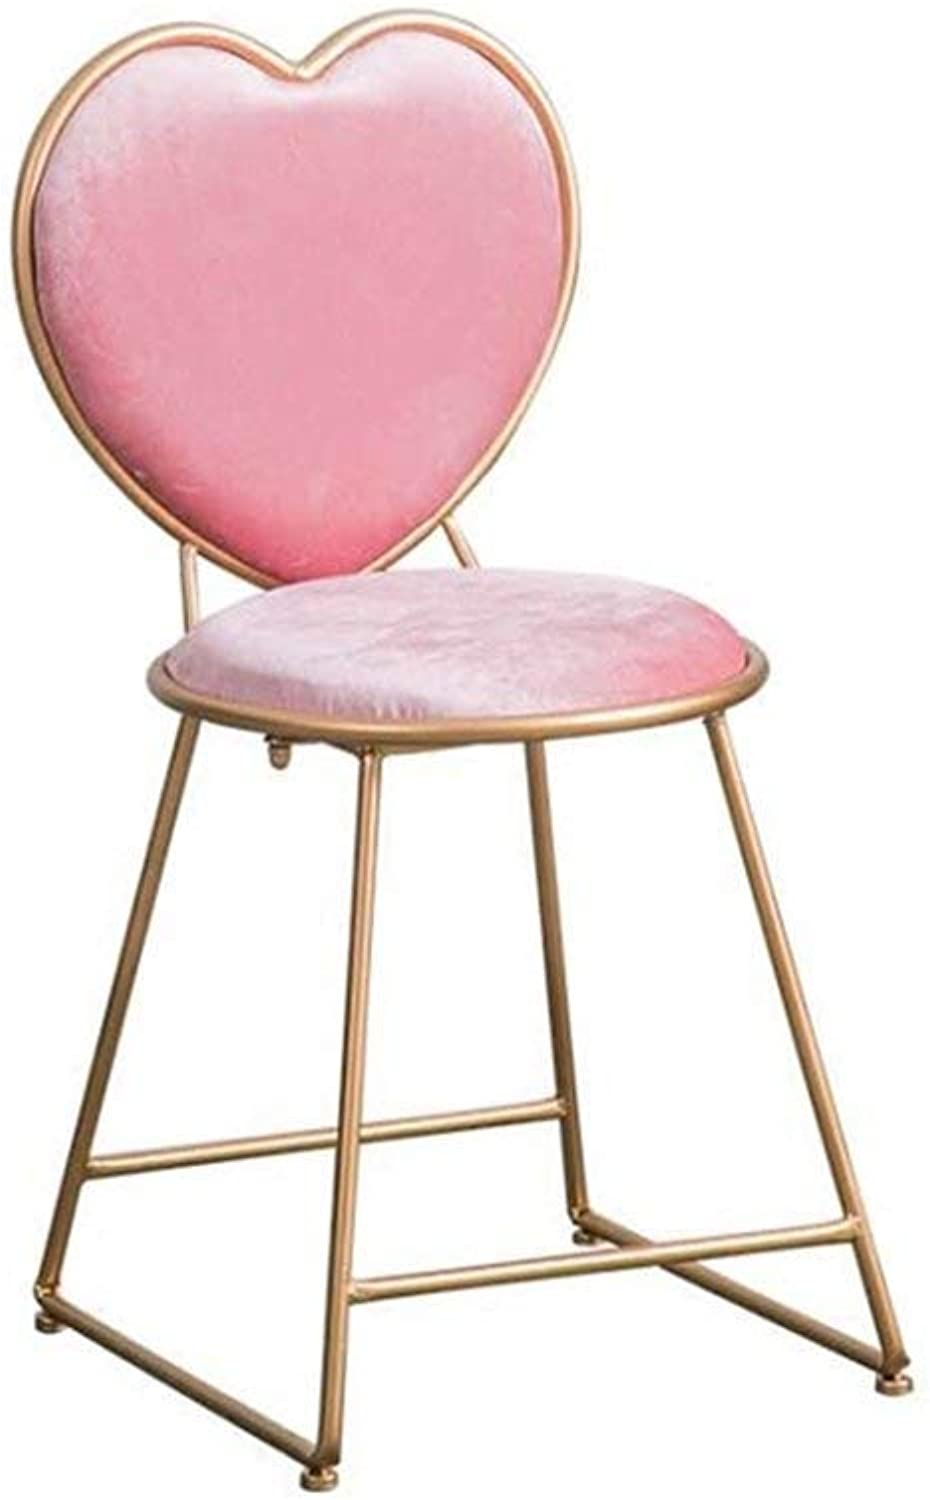 Home Decor Chair, Metal Frame Coral Fleece Chair, Ladies Heart Shaped Makeup Chair, Family Dining Chair Creative Dining Chair GMING (color   40  45  80cm)